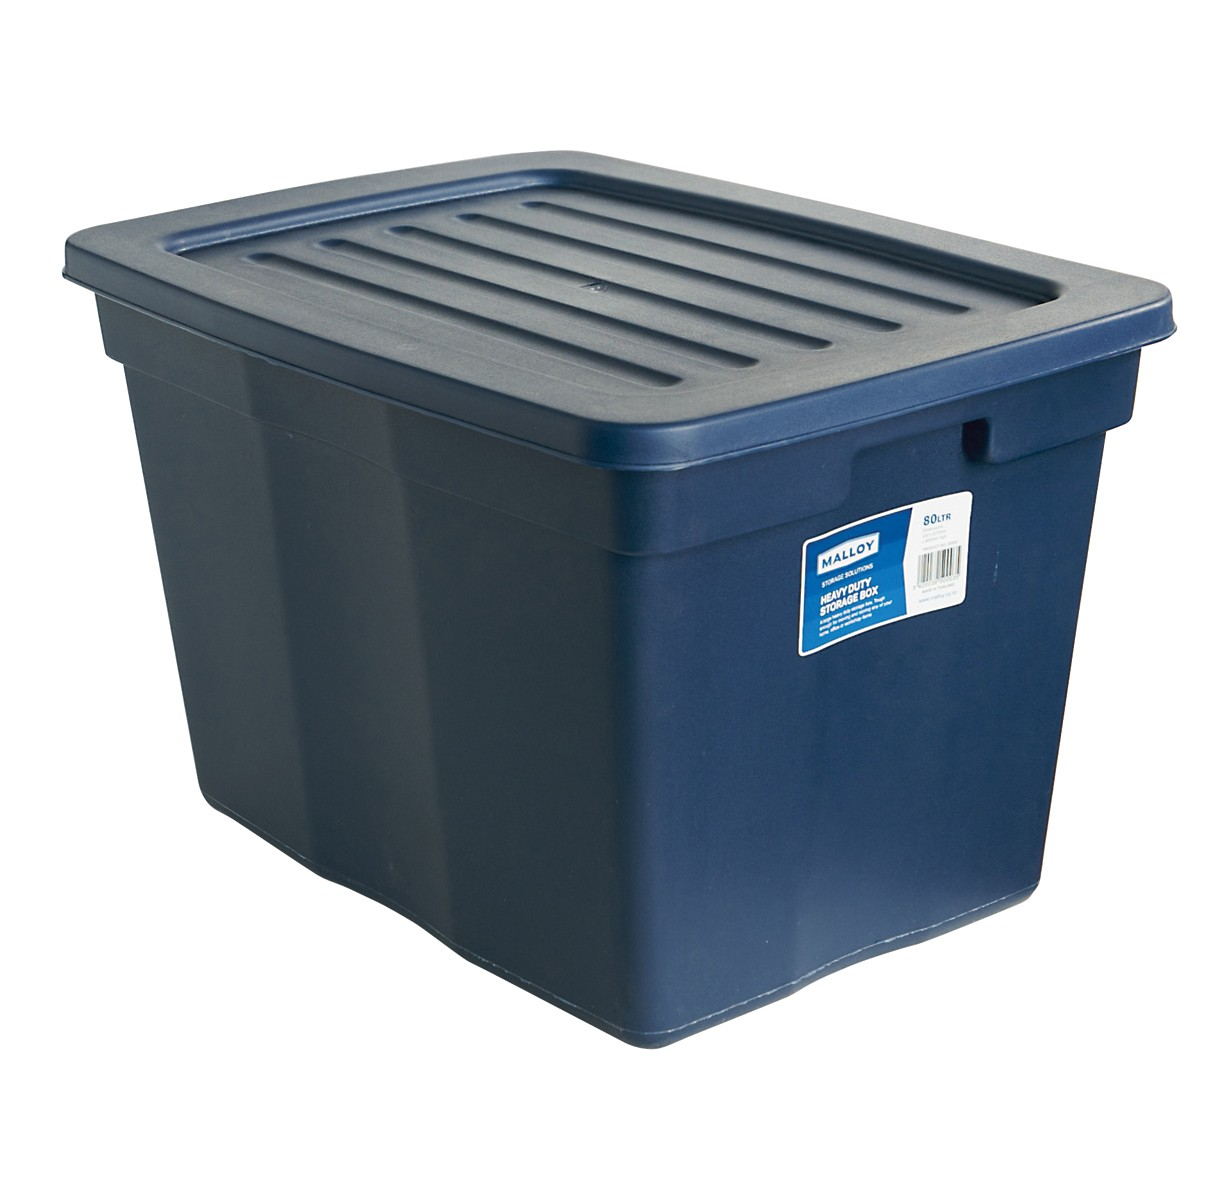 malloy storage box 79l with lid from storage box. Black Bedroom Furniture Sets. Home Design Ideas